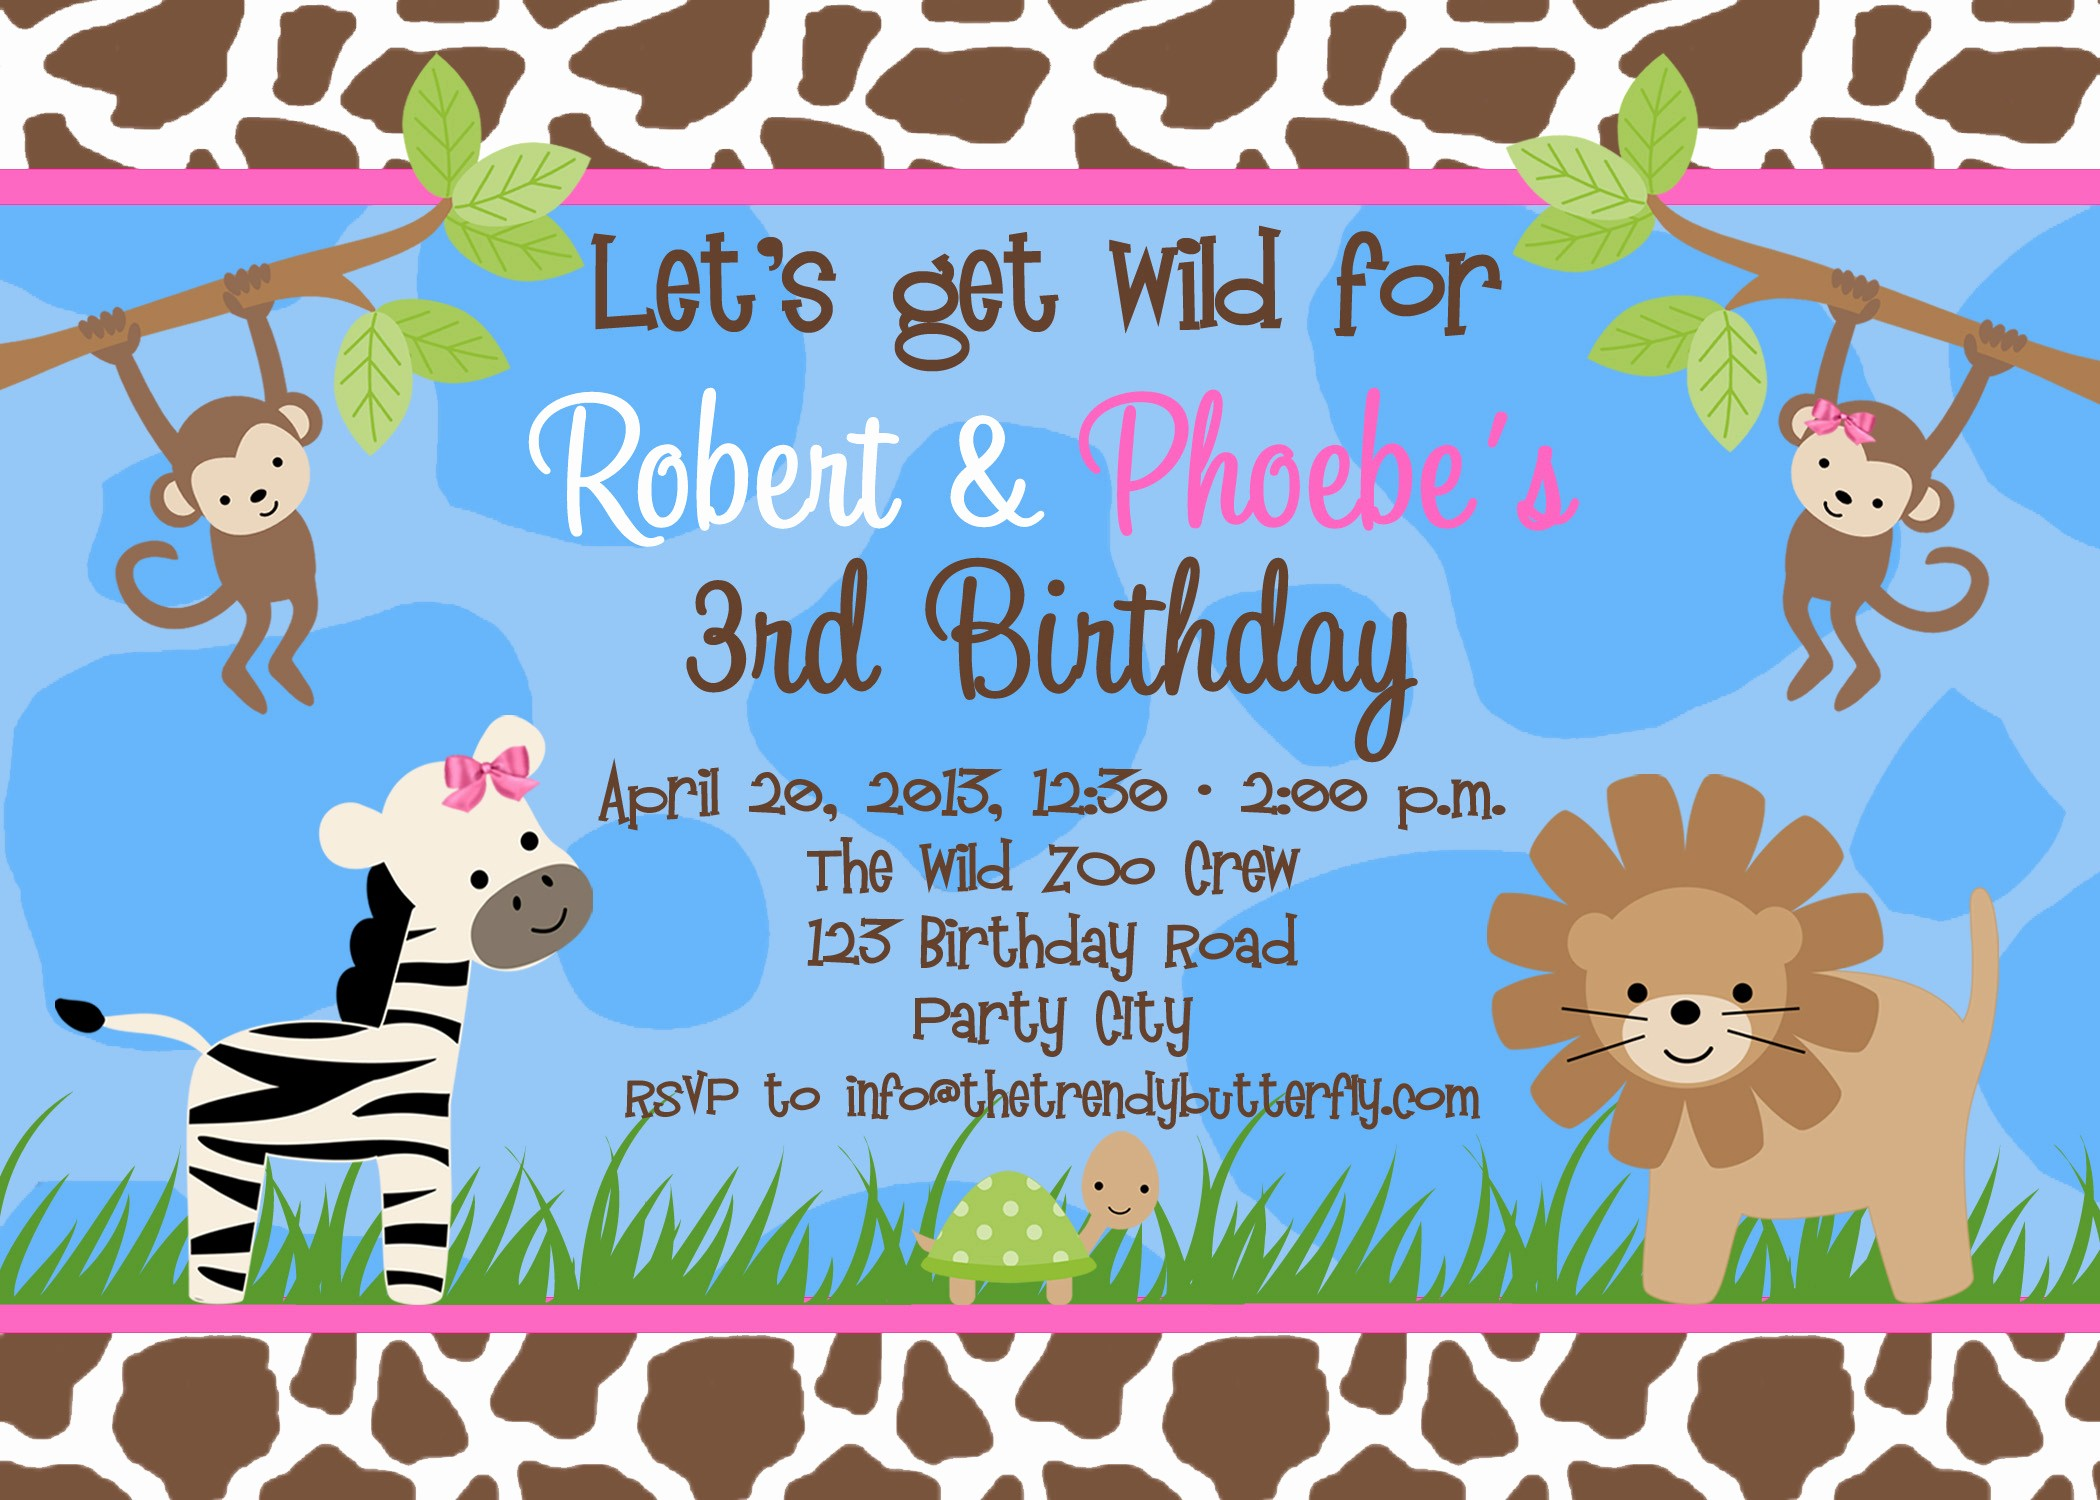 Free Printable Party Invitations Templates Beautiful Free Birthday Party Invitation Templates